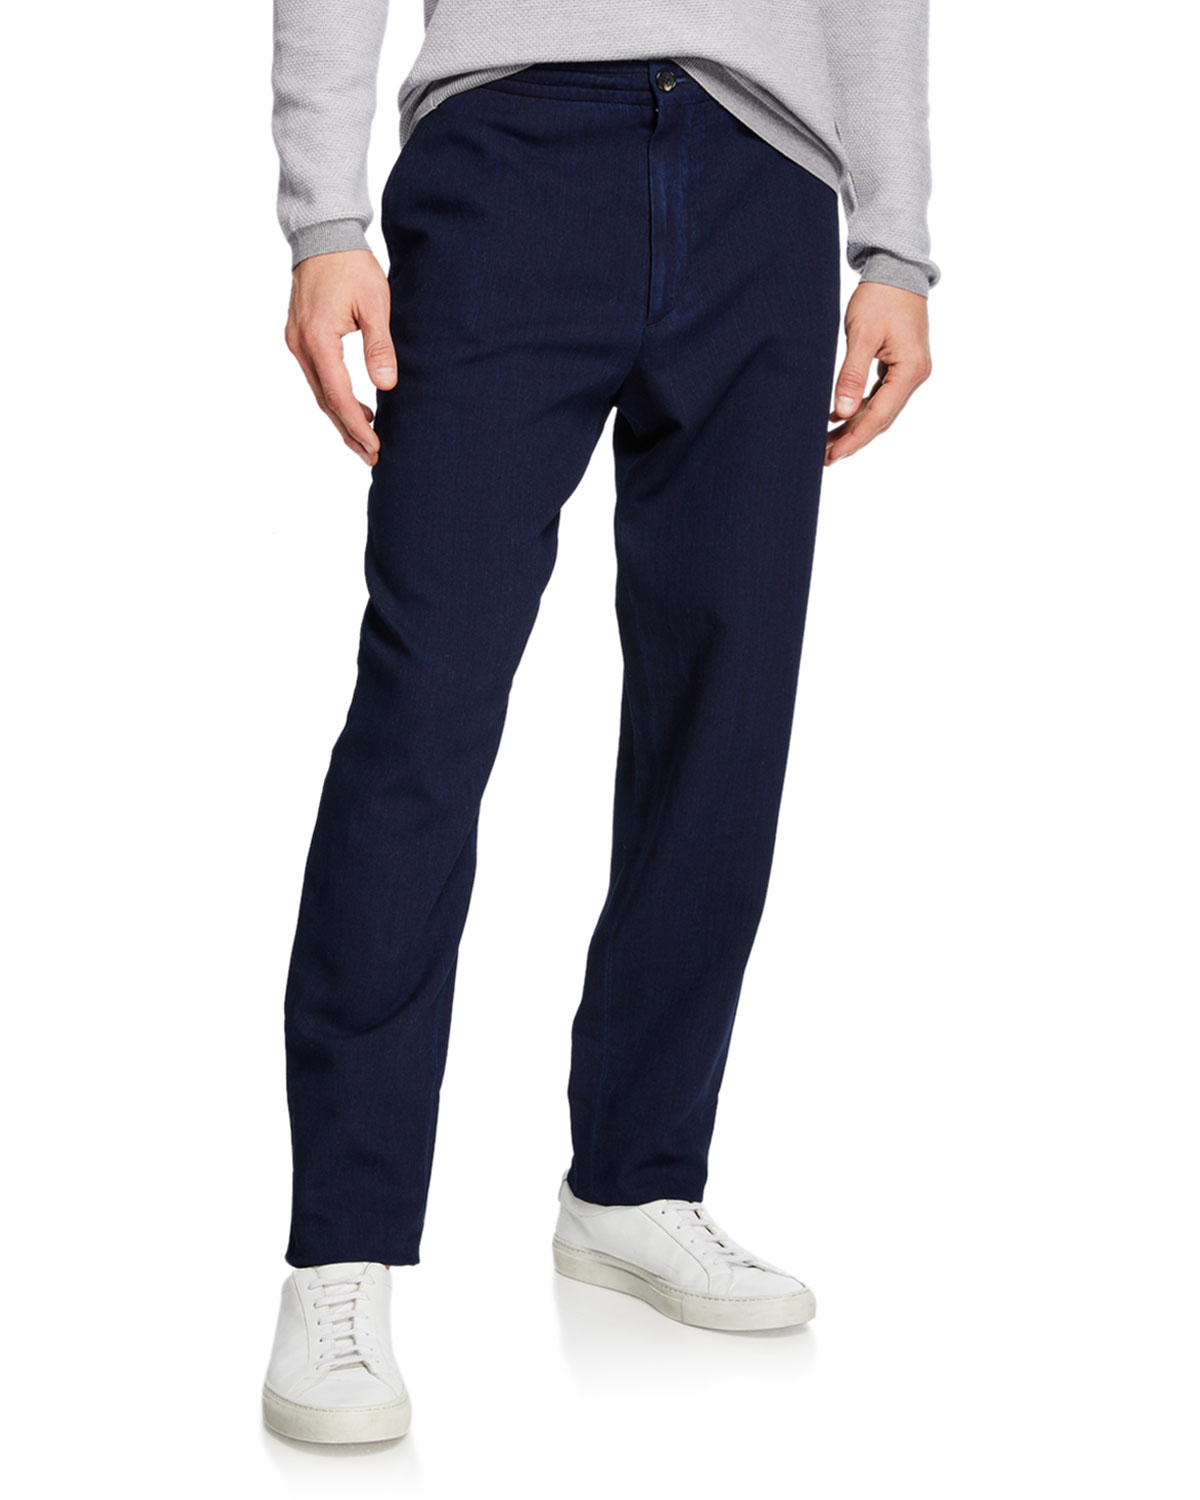 Ermenegildo Zegna Men's Chino Denim Pants